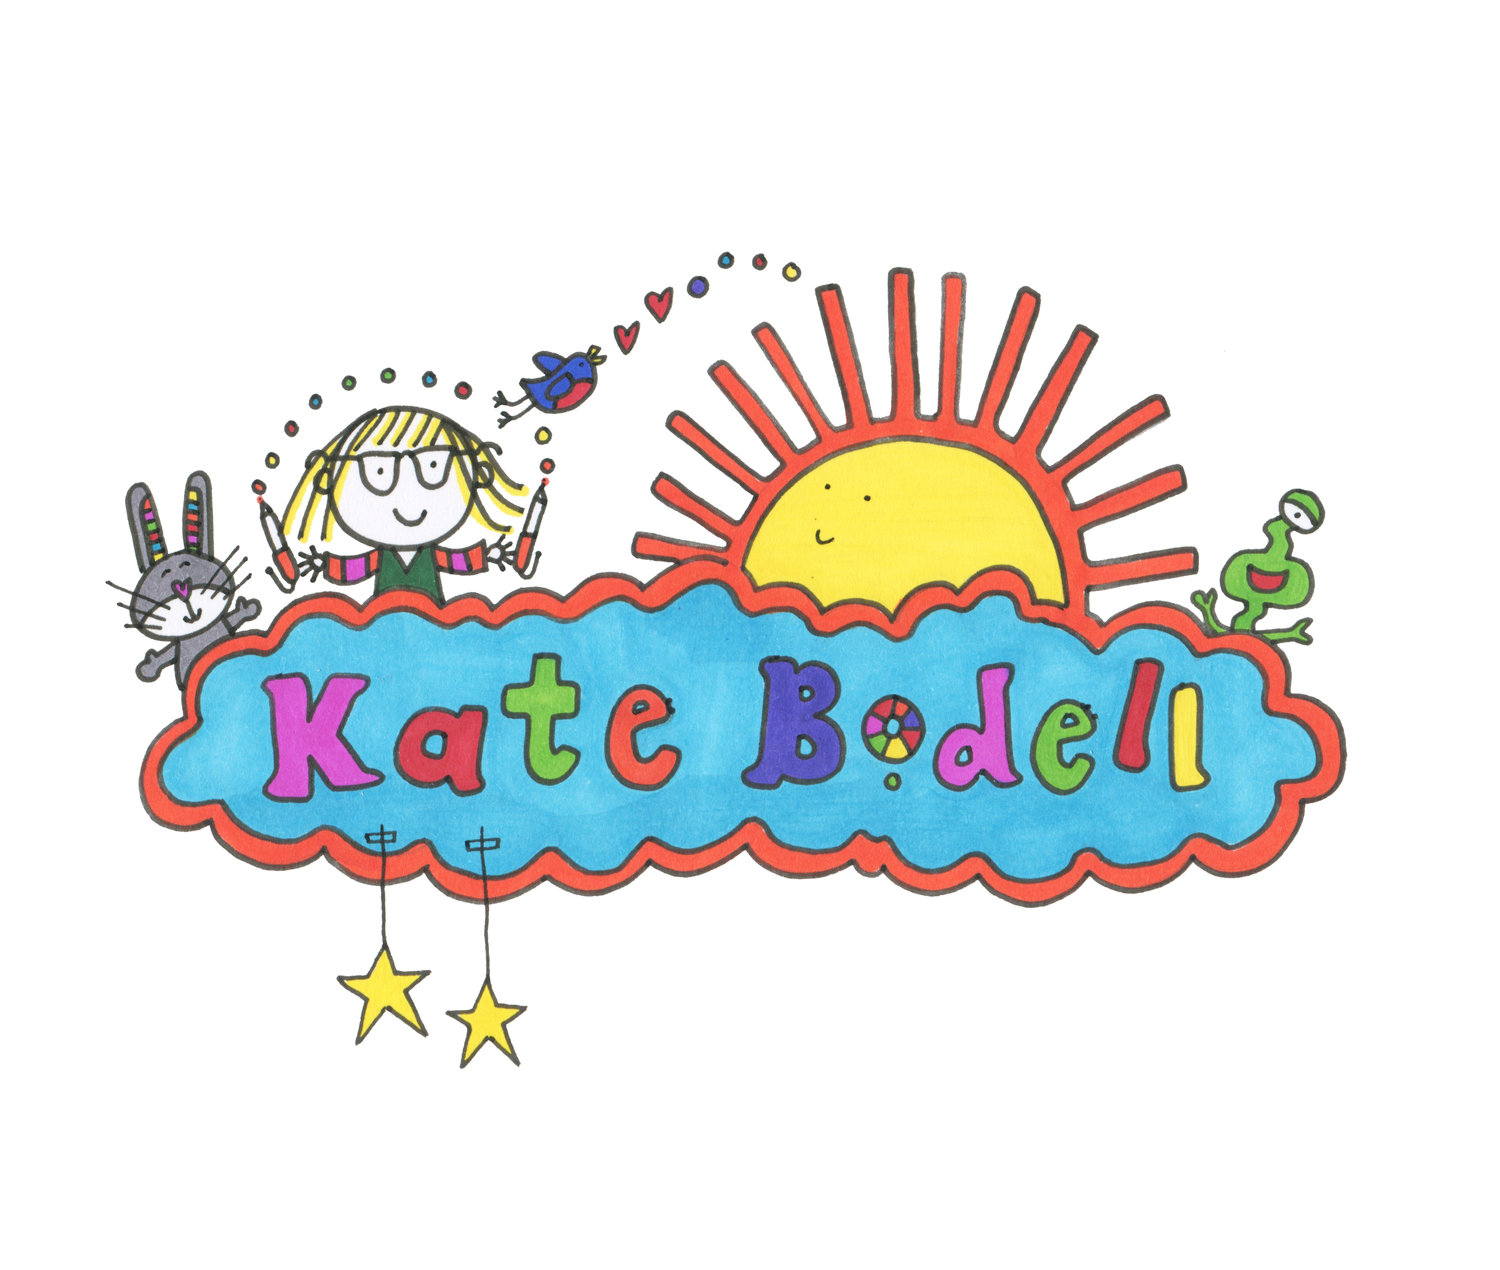 Kate Bodell - Writer & Illustrator